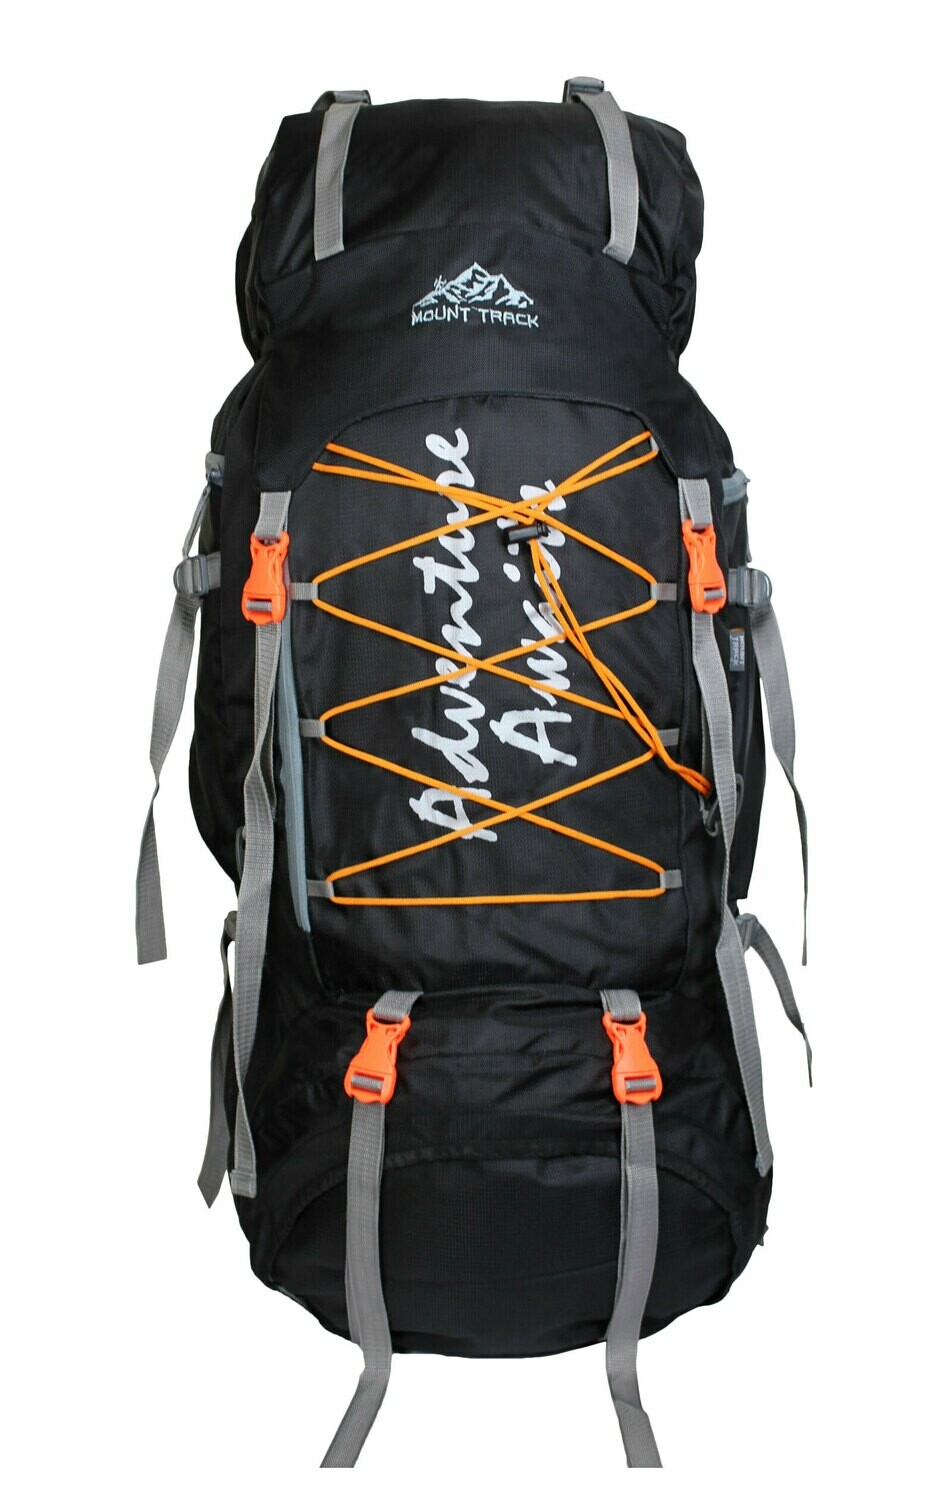 Mount Track Adventure Awaits 70 Ltrs Hiking & Trekking Rucksack Backpack